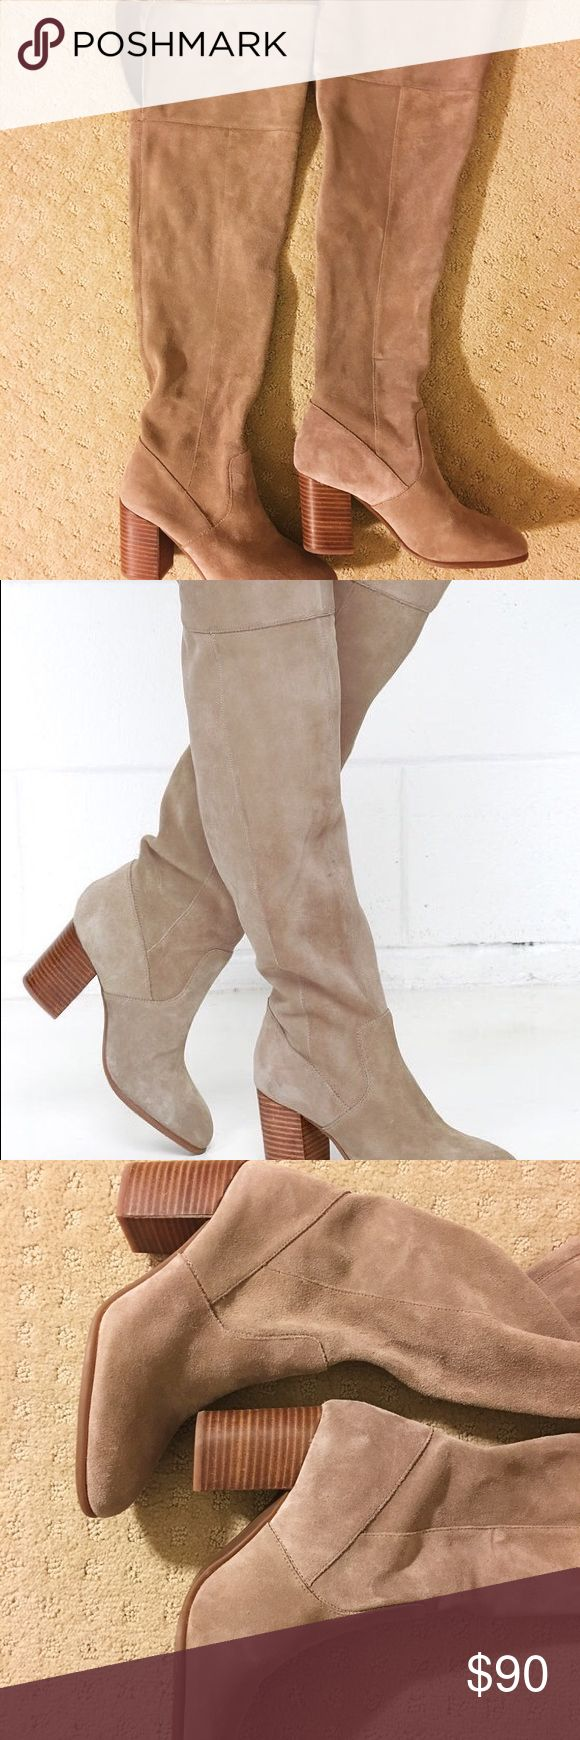 Jessica Simpson women's Suede Boots New. Never worn.   over the knee Our selection of Jessica Simpson's shoes includes various styles of heels, pumps, dress pumps, sandals, boots and wedges. Jessica Simpson's trendy and popular shoes are the perfect addition to your shoe collection.  Upper Material: Leather Upper Sole Material: Man Made Sole Fit: This Shoe Fits True To Size. Specifications  Size6.5M Women's Shoe Size6.5 ColorSlater Taupe Suede Age RangeAdult, Teen Shoe WidthB Jessica…